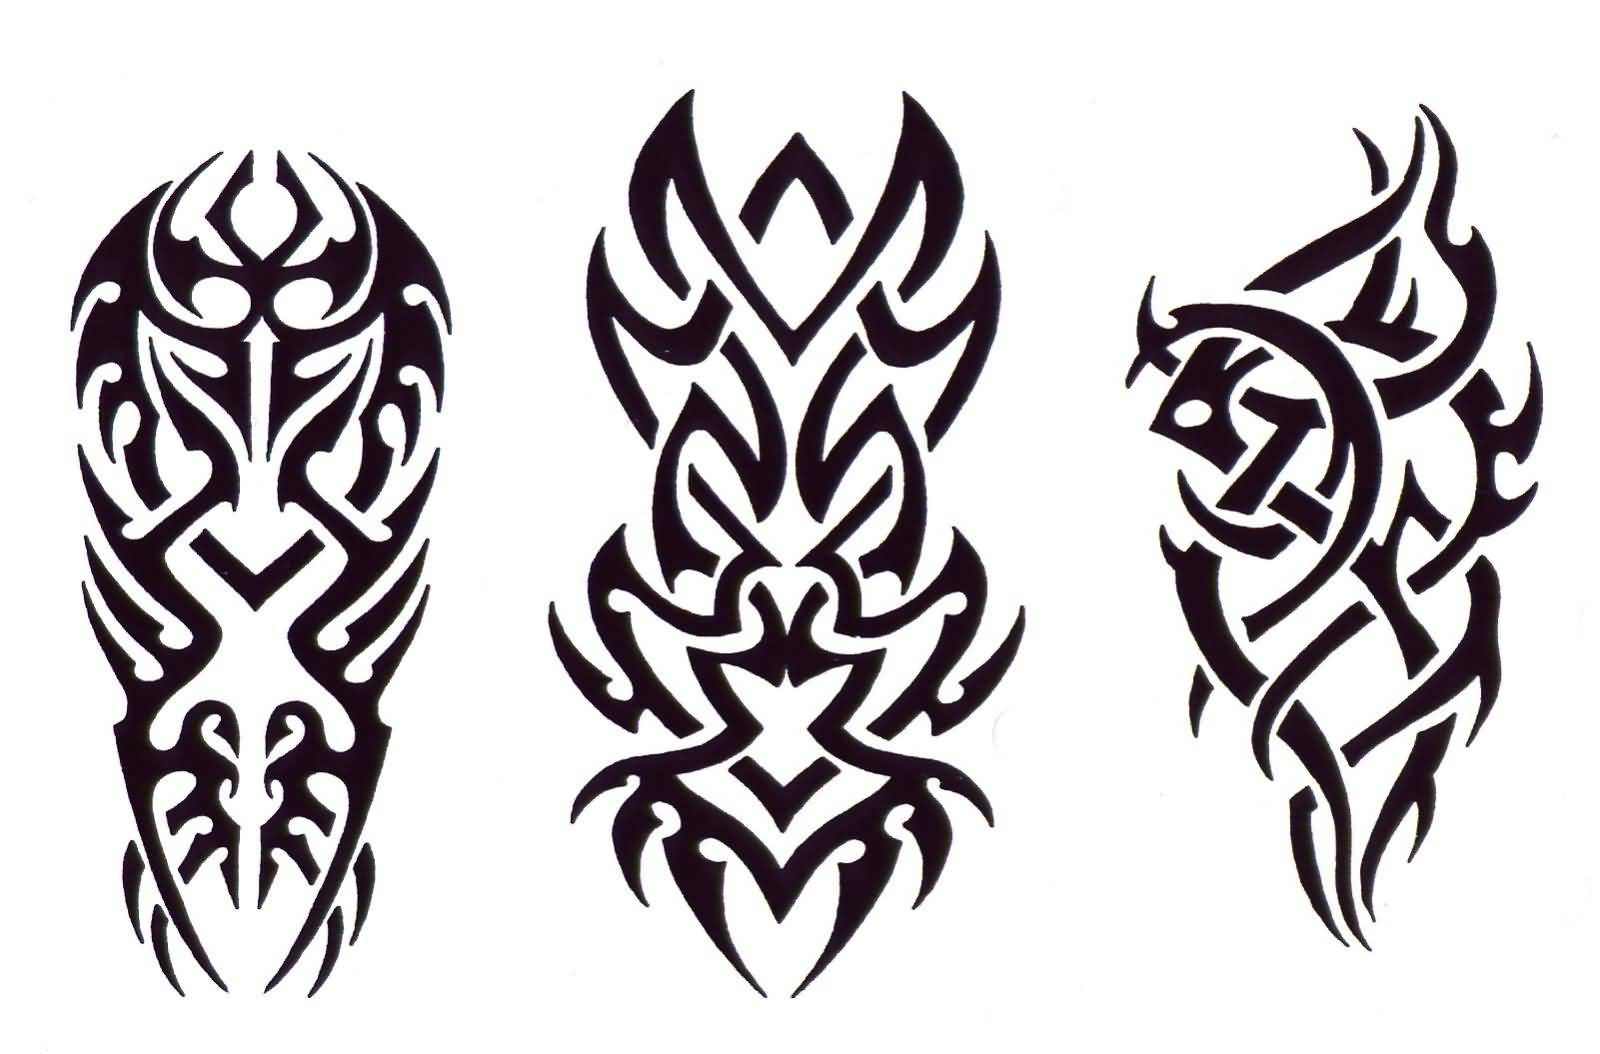 What that Tribal tattoo designs think, that